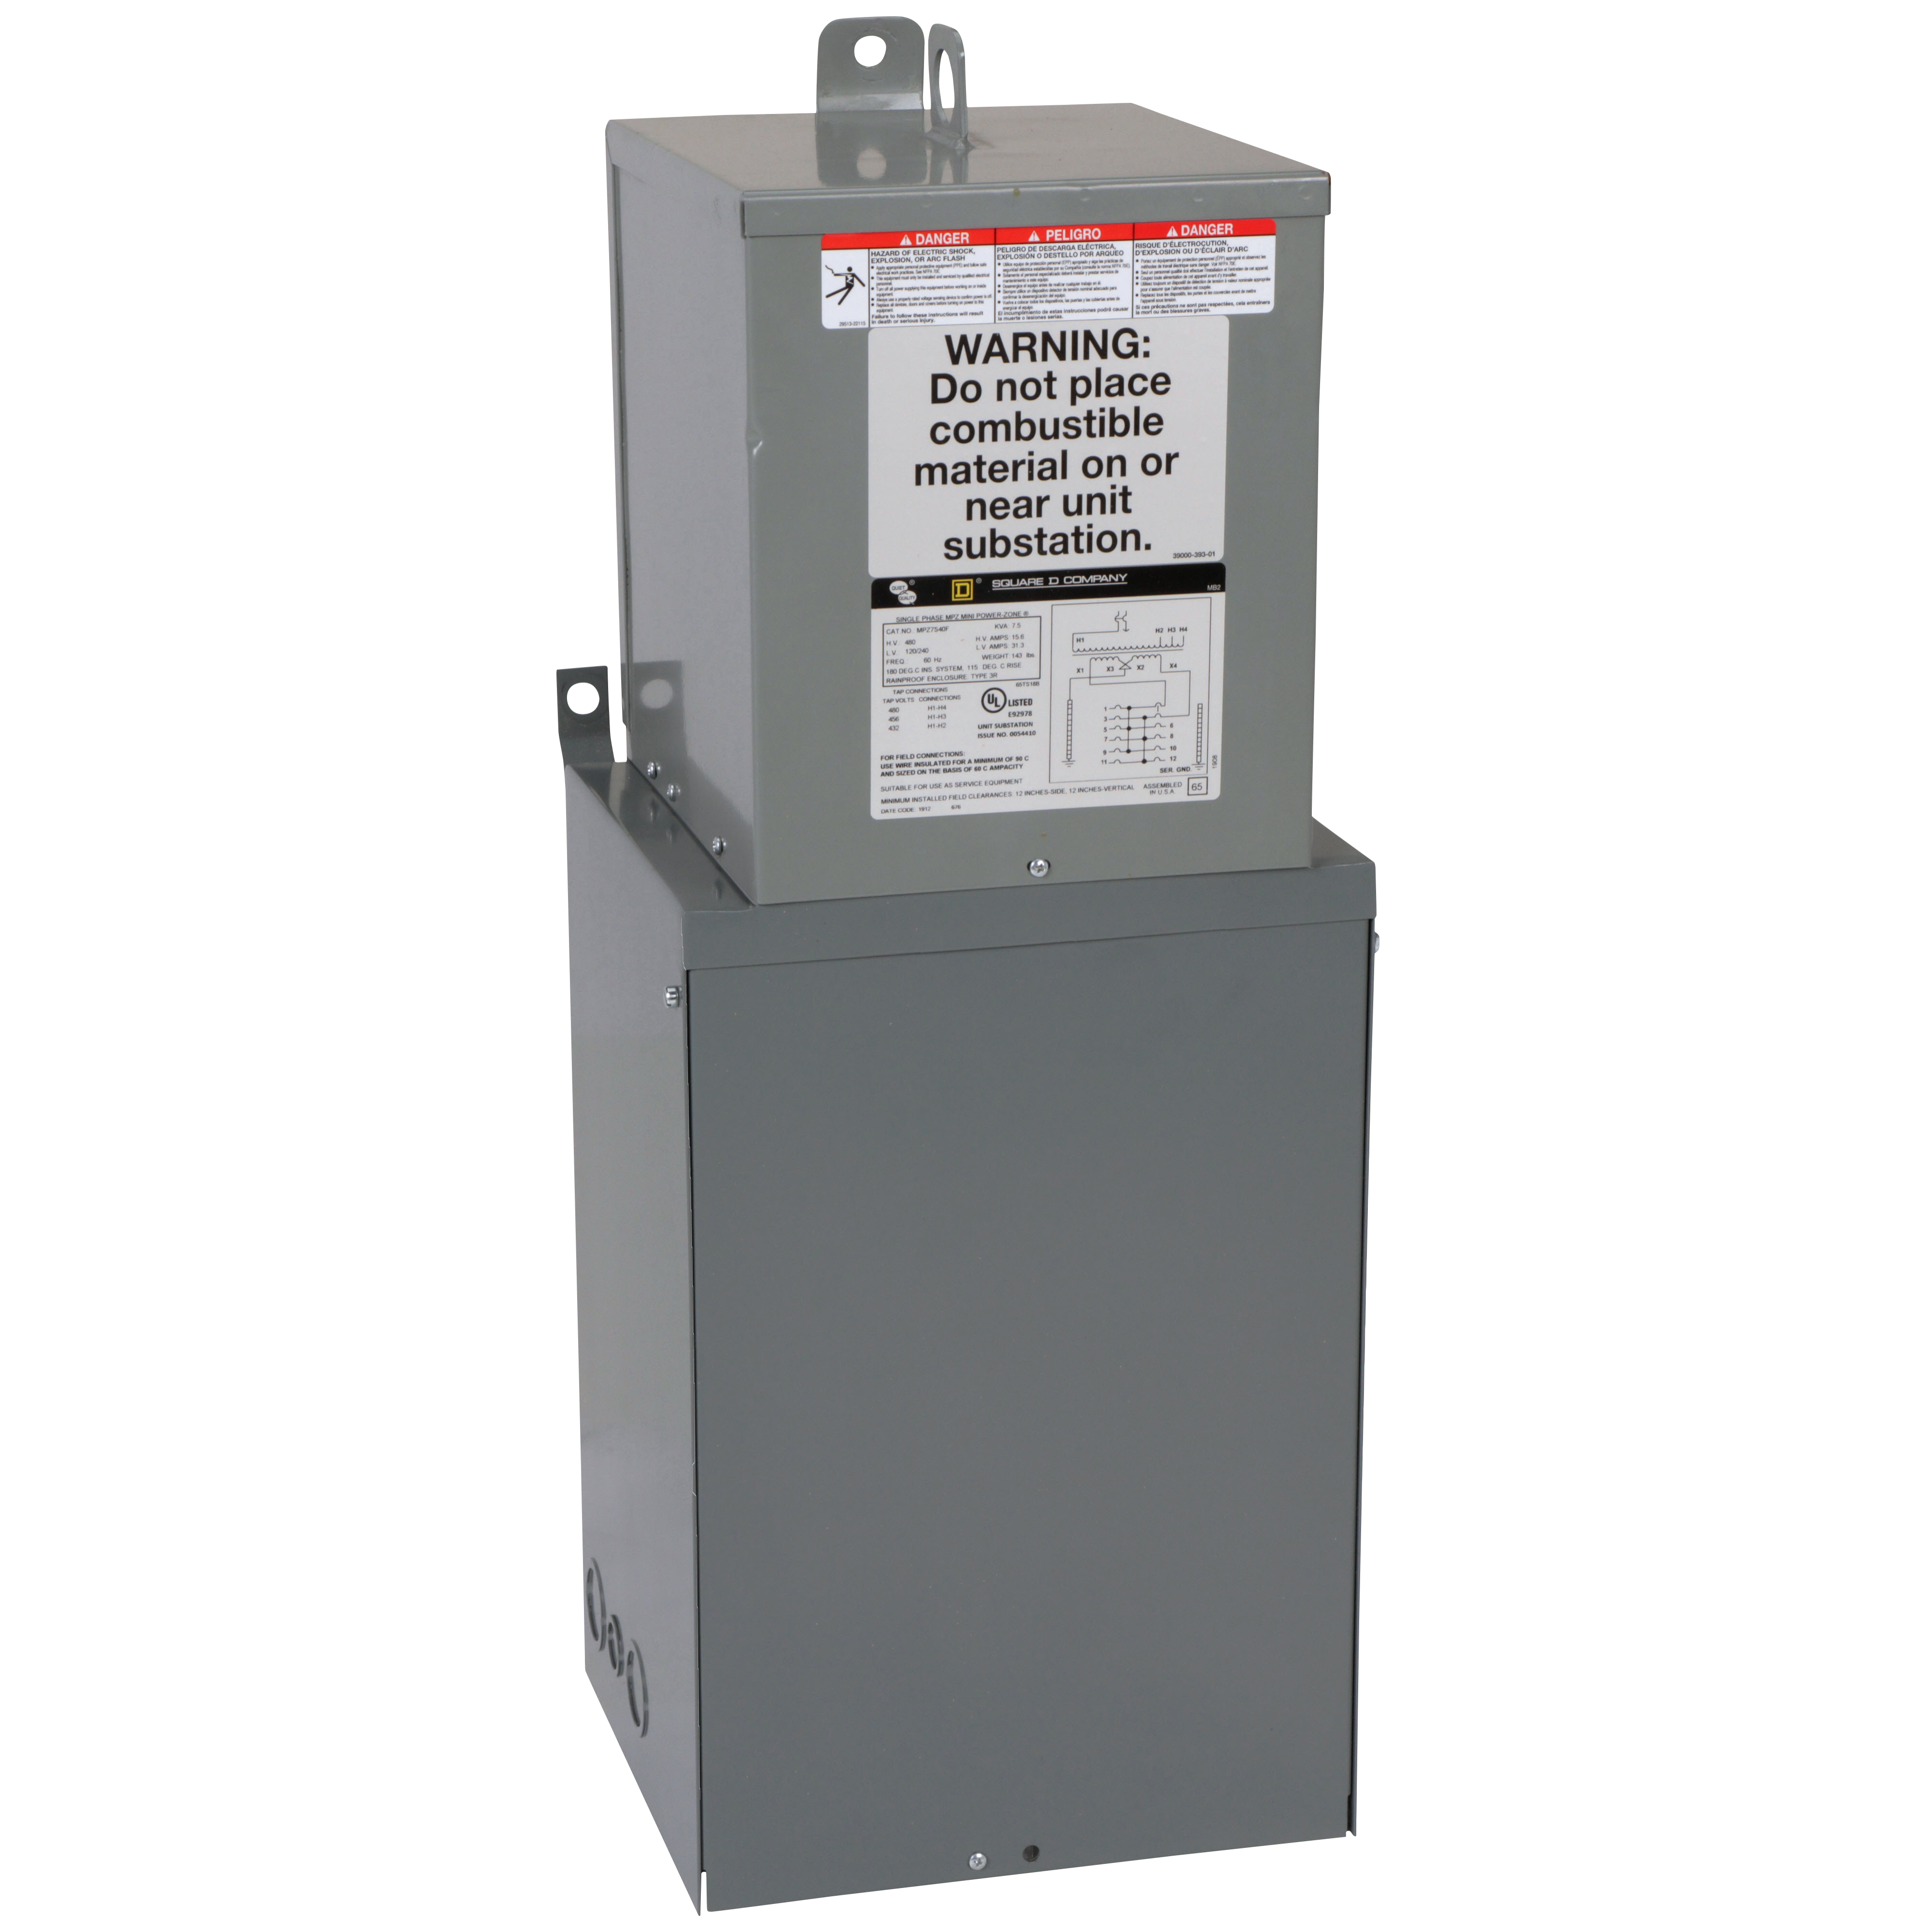 Square-D MPZ15S40F 480 Volt Primary 15 kVa 1-Phase 24-Circuit 24-Space NEMA 3R Mini Unit Substation